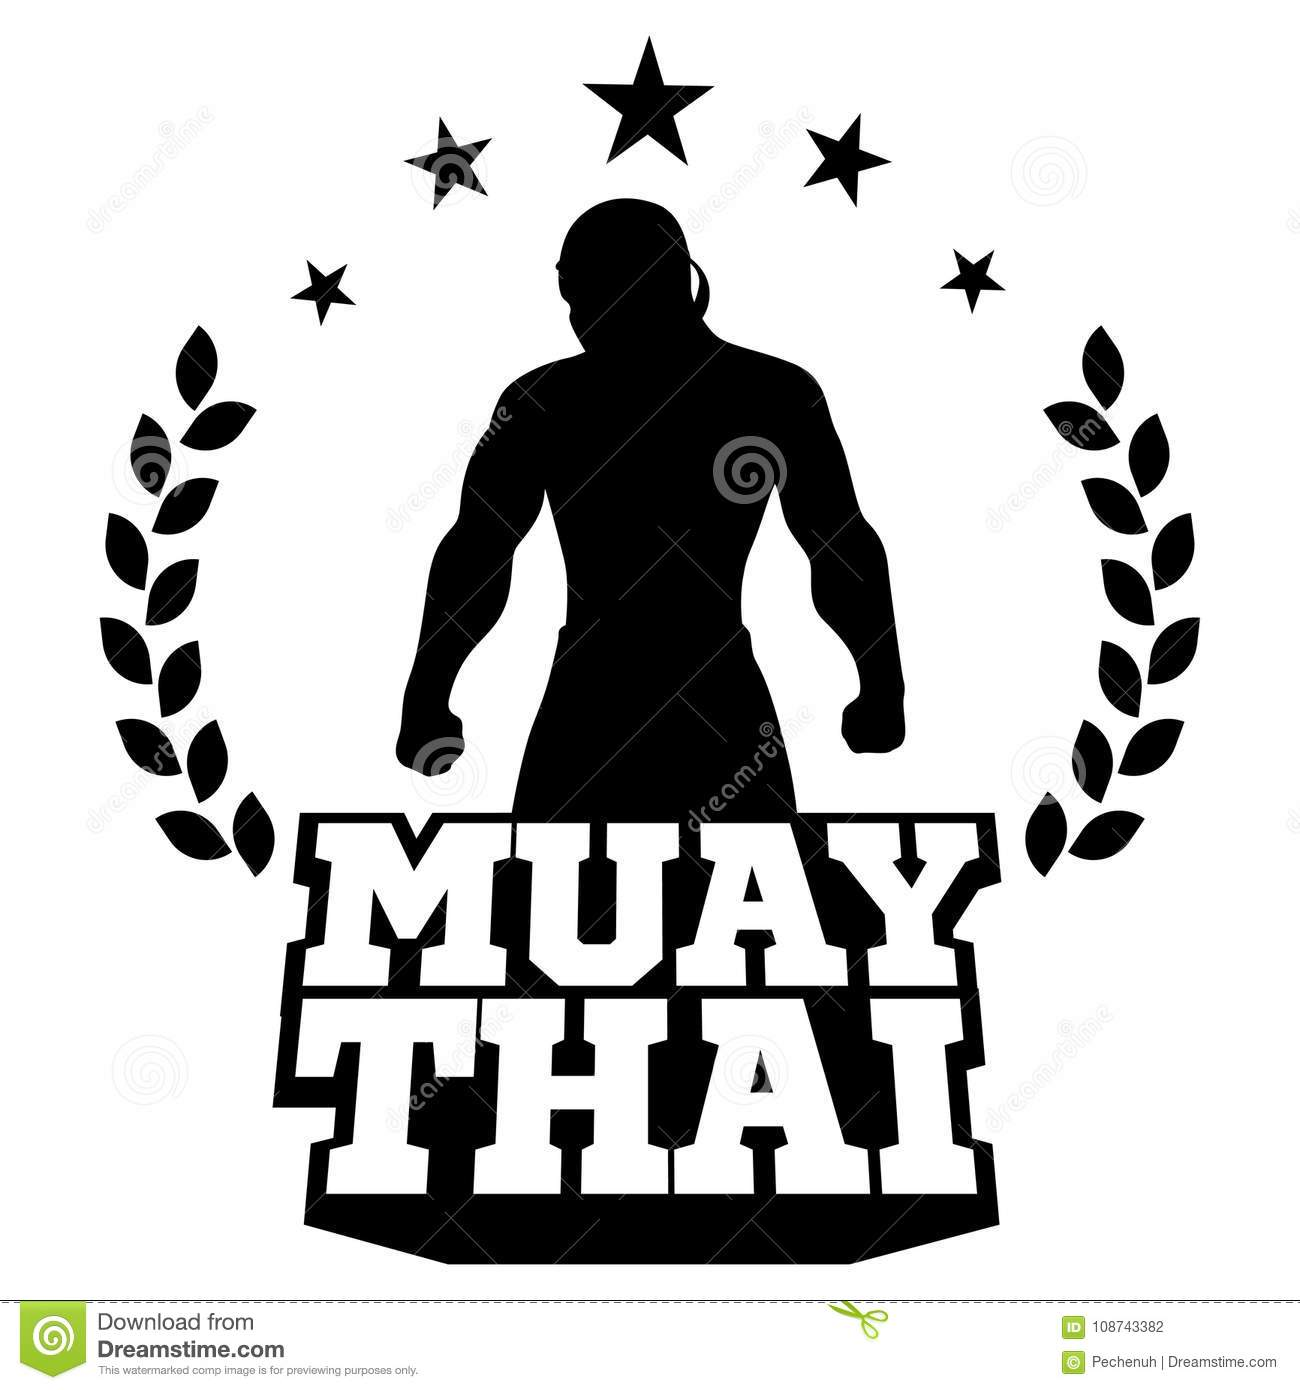 muay thai vector logo for boxing gym or other stock vector rh dreamstime com muay thai logo designs muay thai logo designs